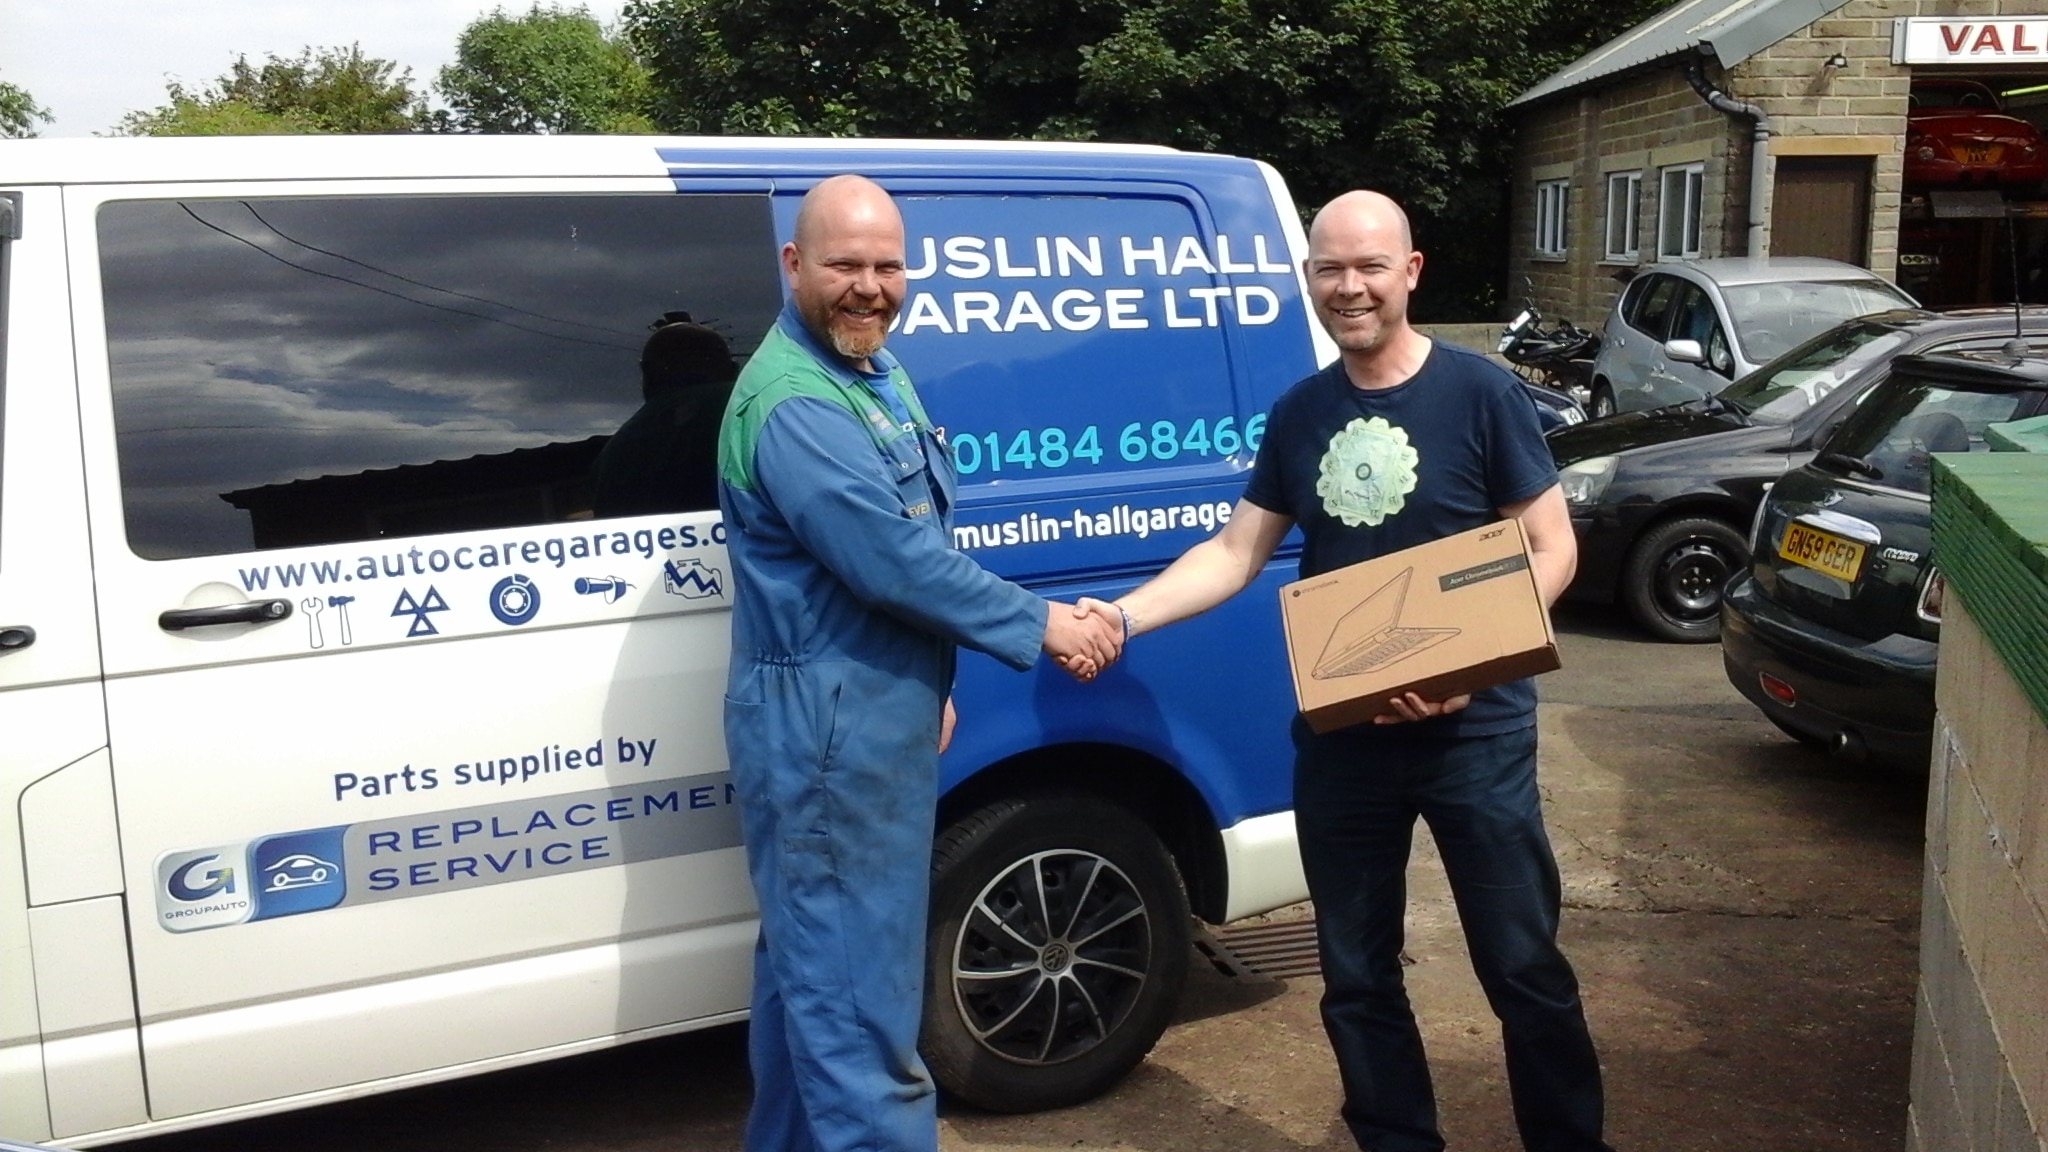 Our Auto Care Garages Summer Giveaway winner 2016 - Russell Briggs being presented with his laptop computer prize by Steven Parr of Muslin Hall Garage